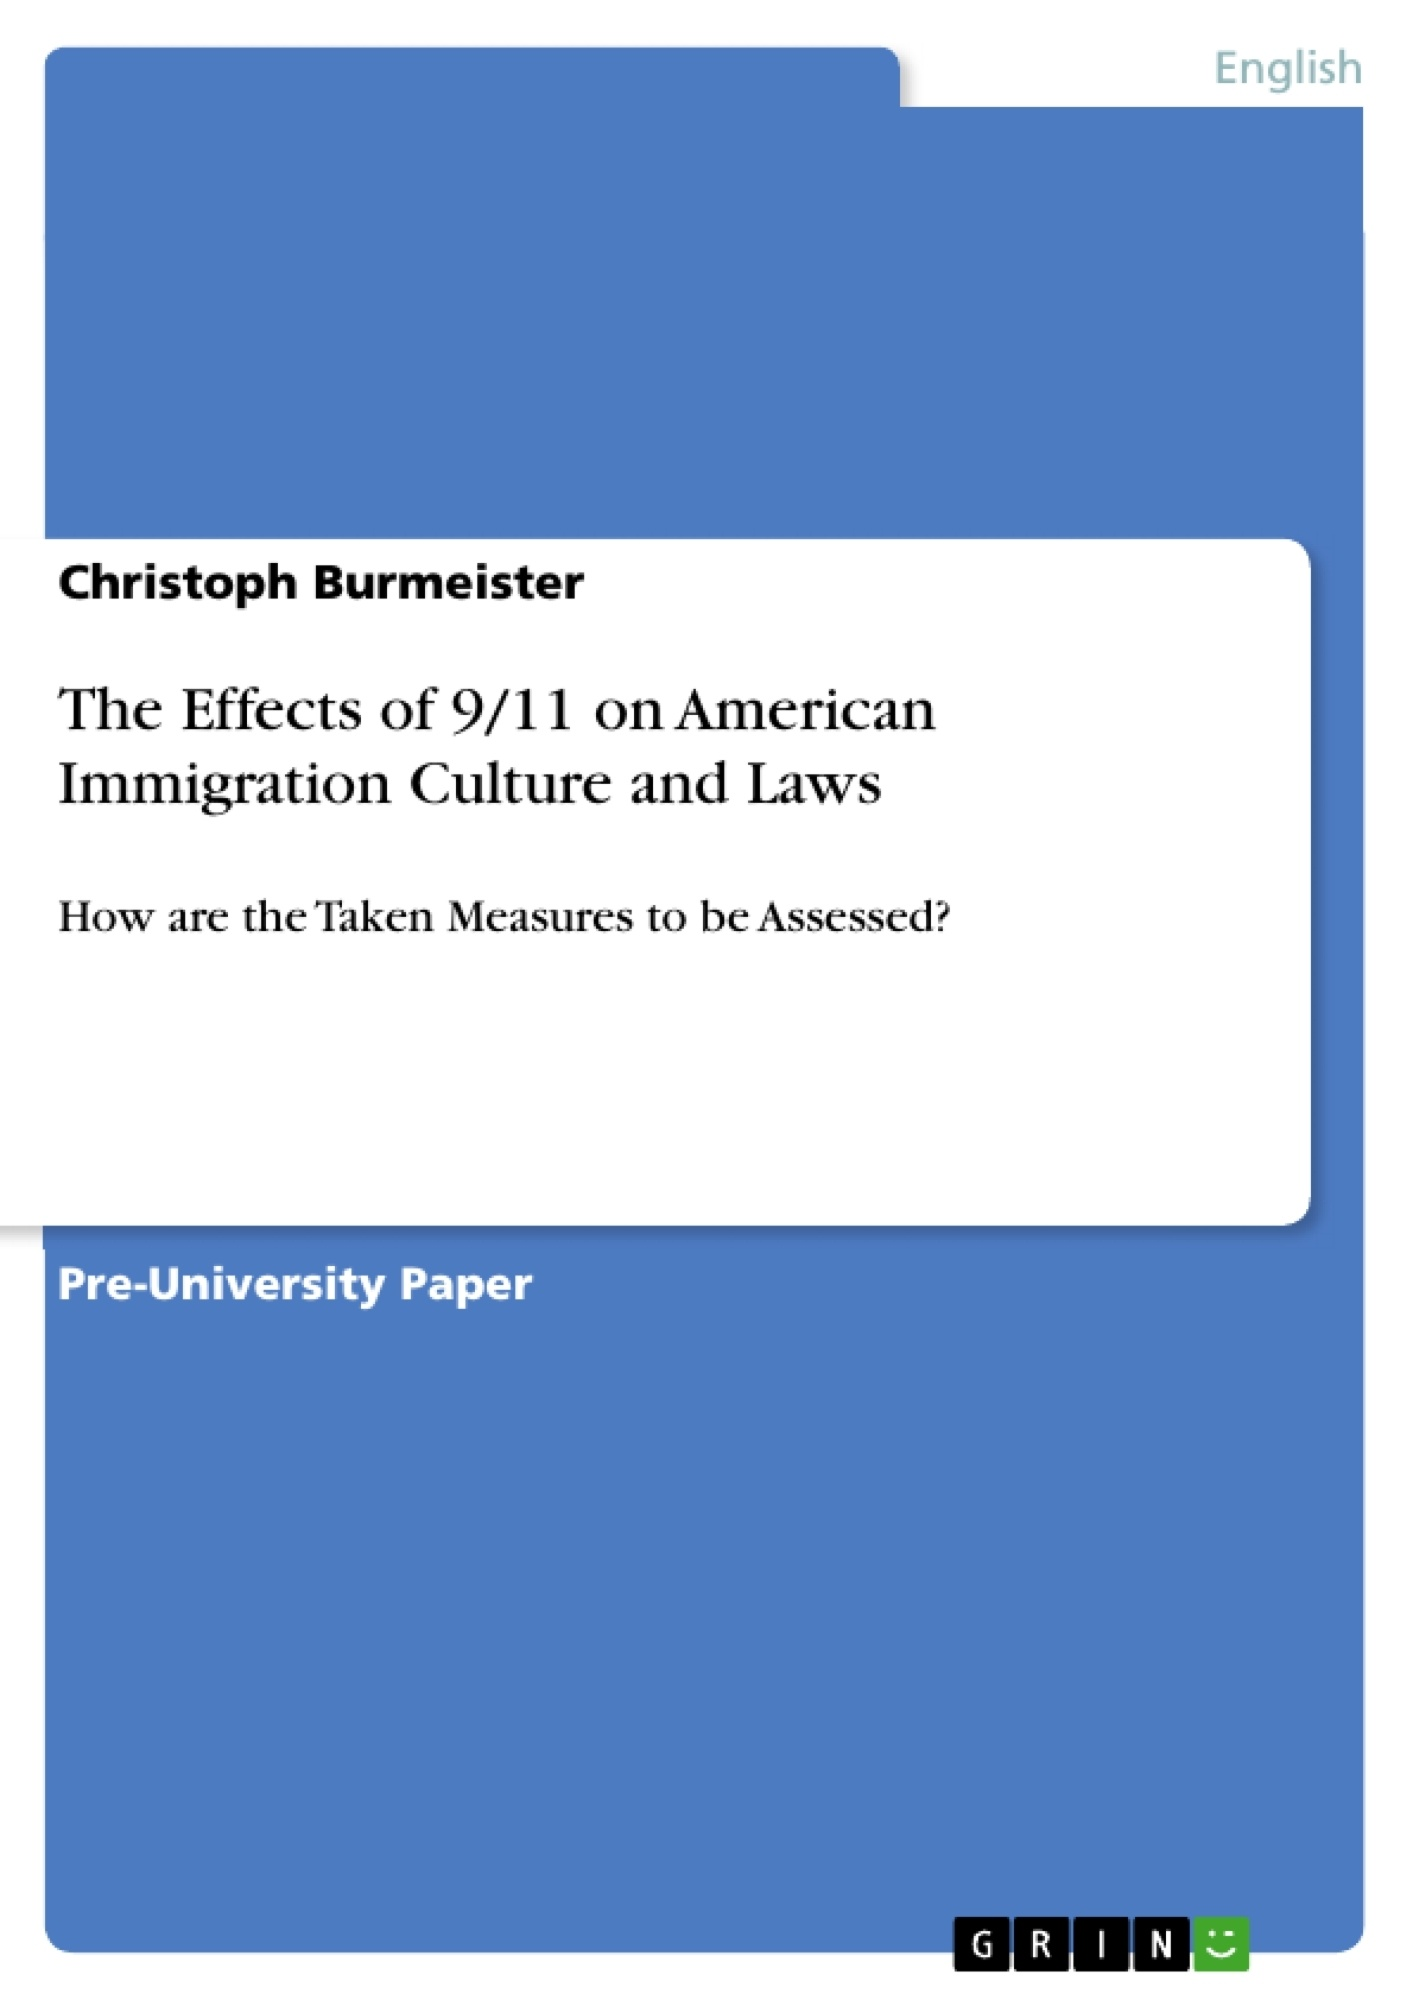 Title: The Effects of 9/11 on American Immigration Culture and Laws